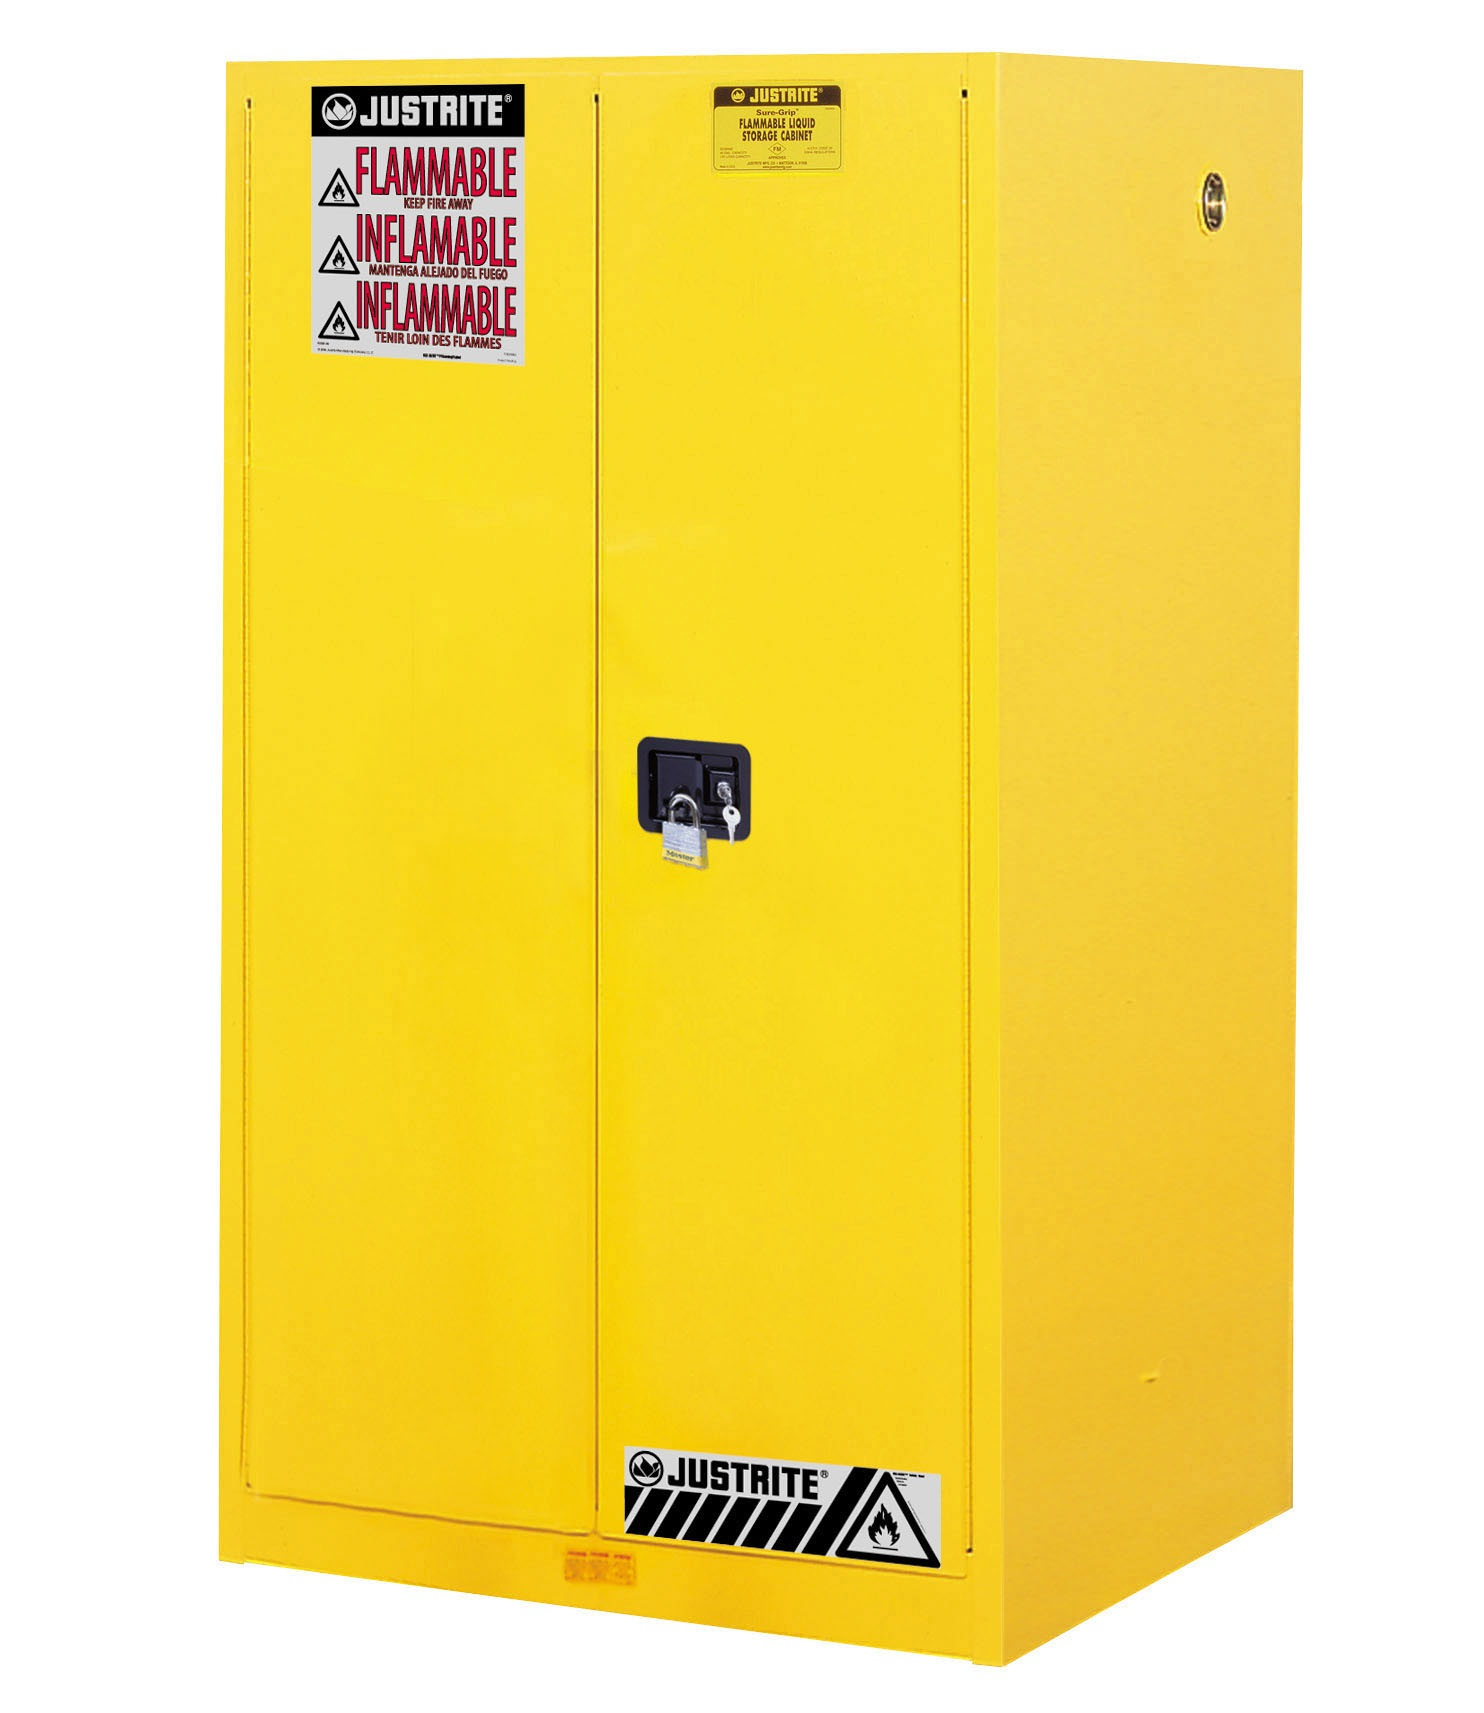 JUSTRITE 60 GAL MANUAL CABINET SURE-GRIP EX WITH PADDLE HANDLE JUM896000